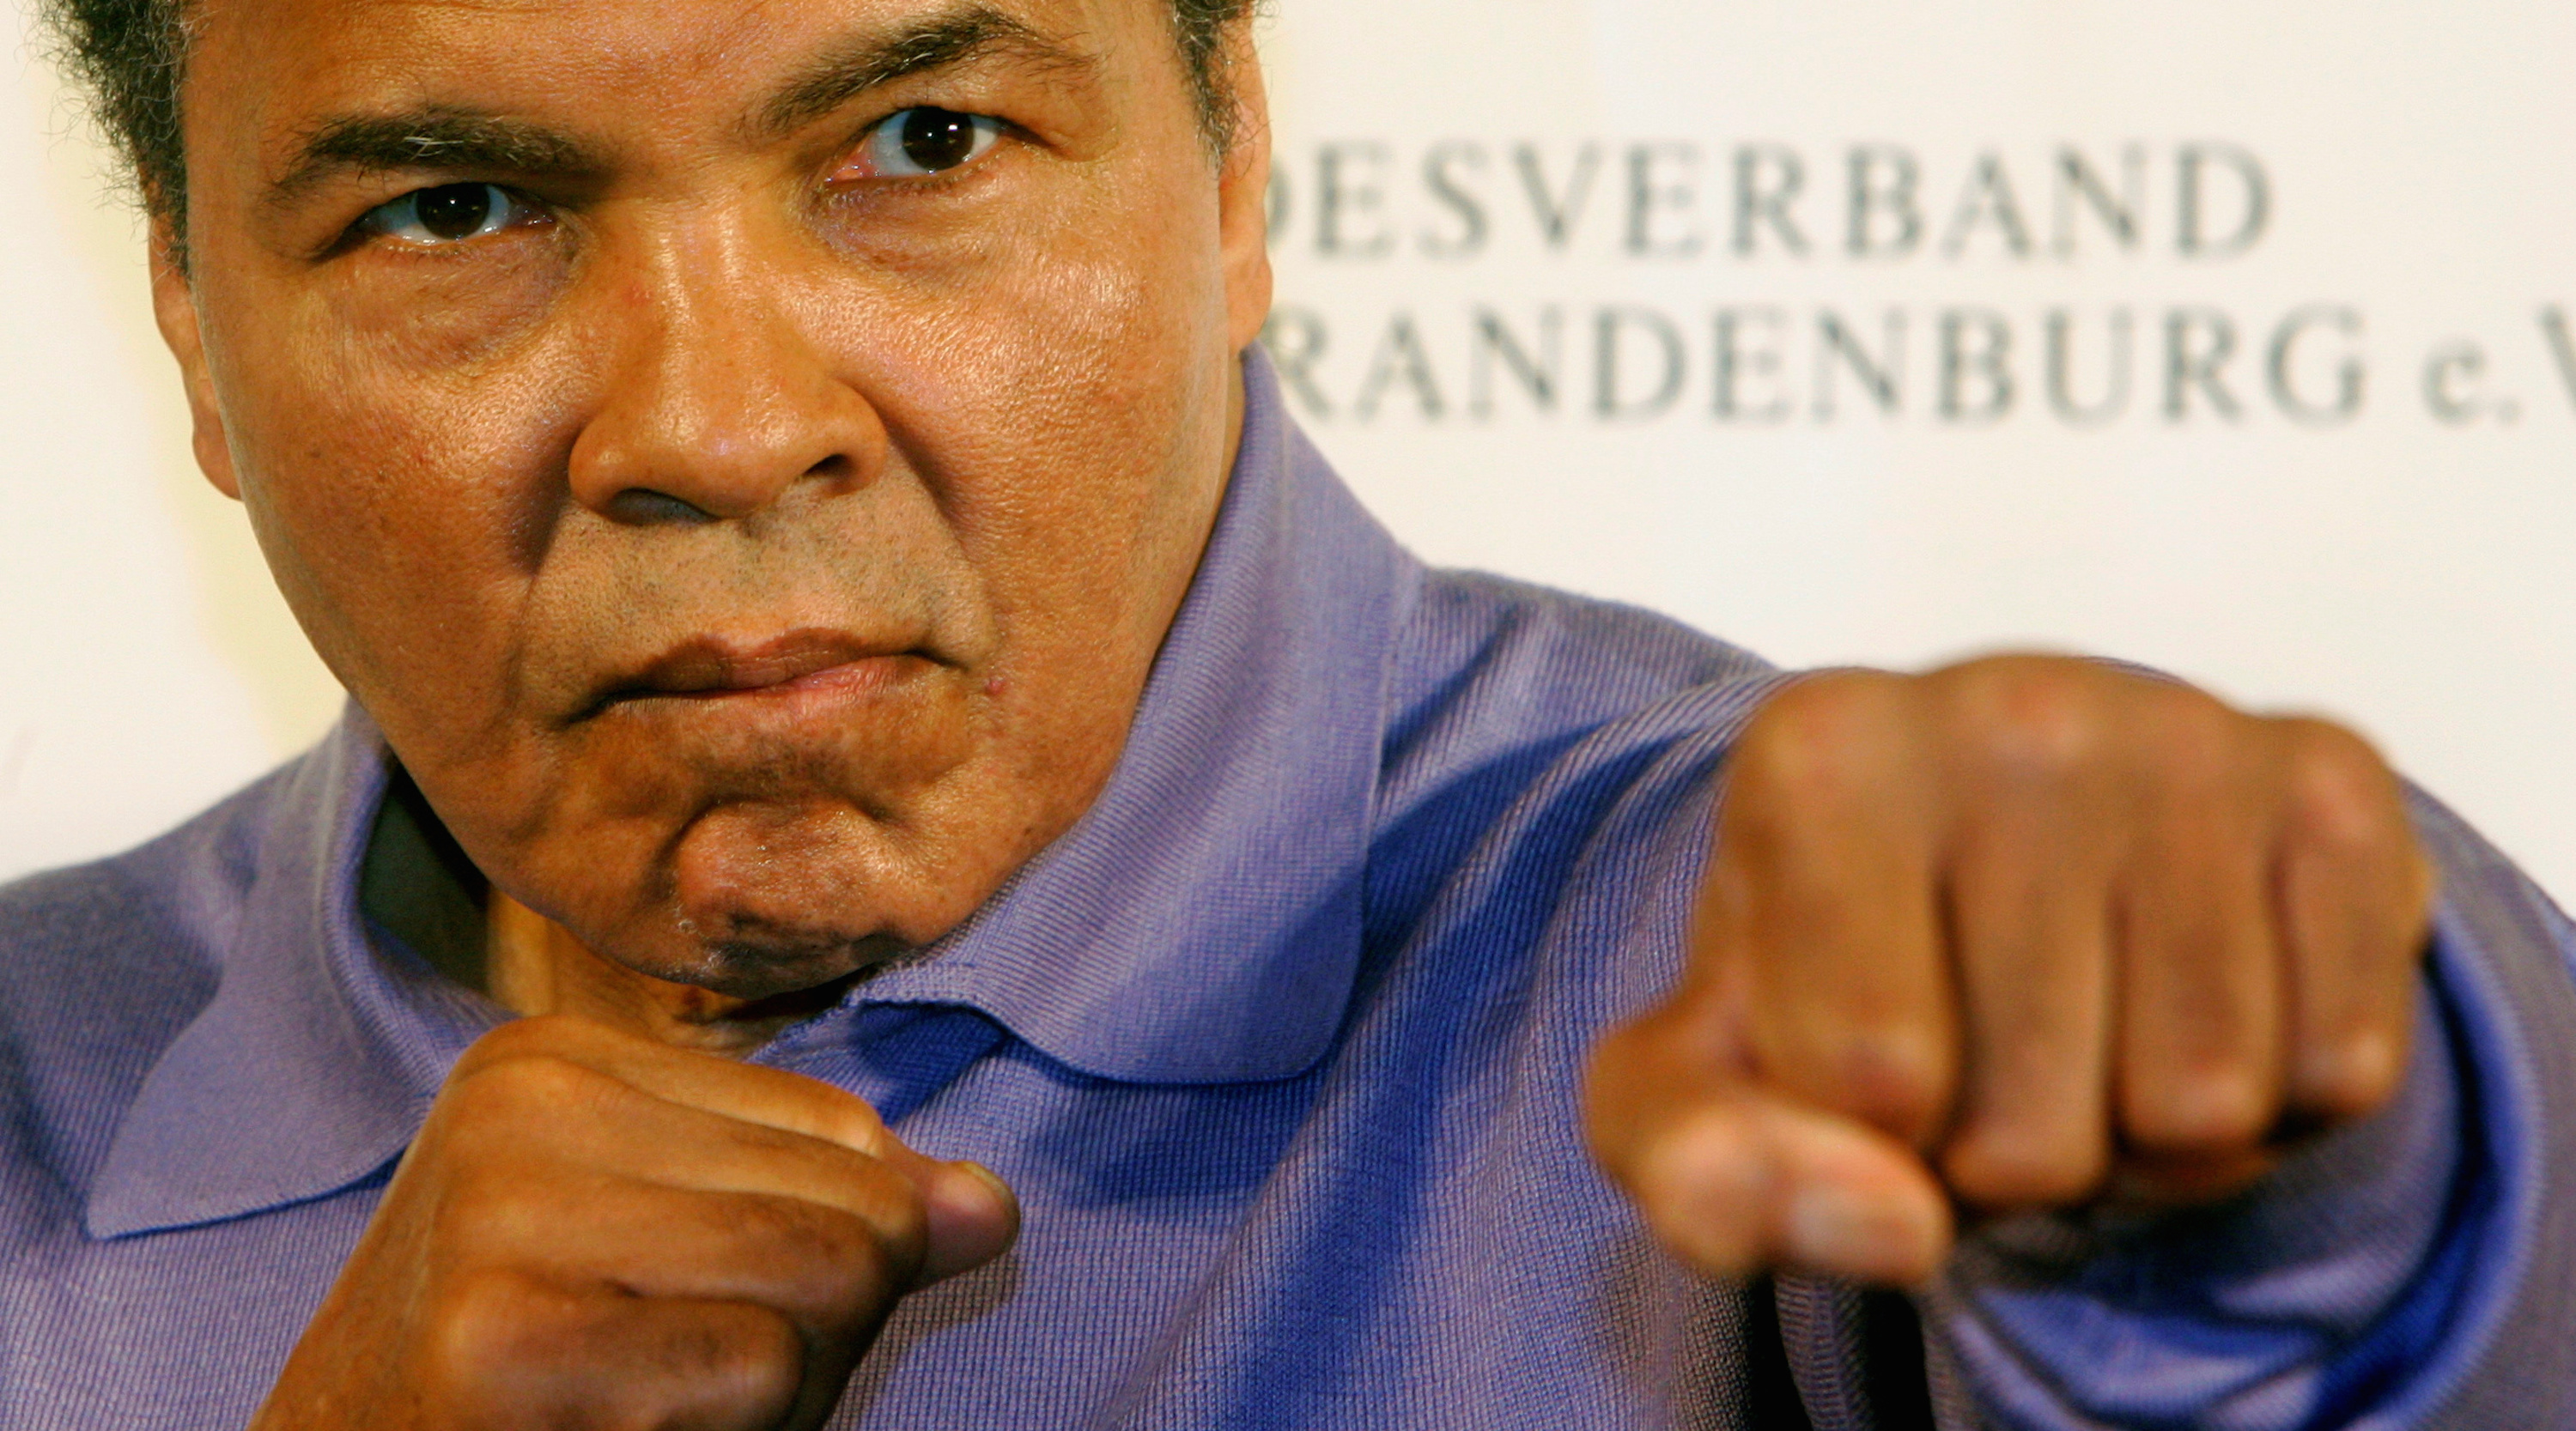 File photo of U.S. Boxing great Muhammad Ali posing for photographs during a news conference in Berlin